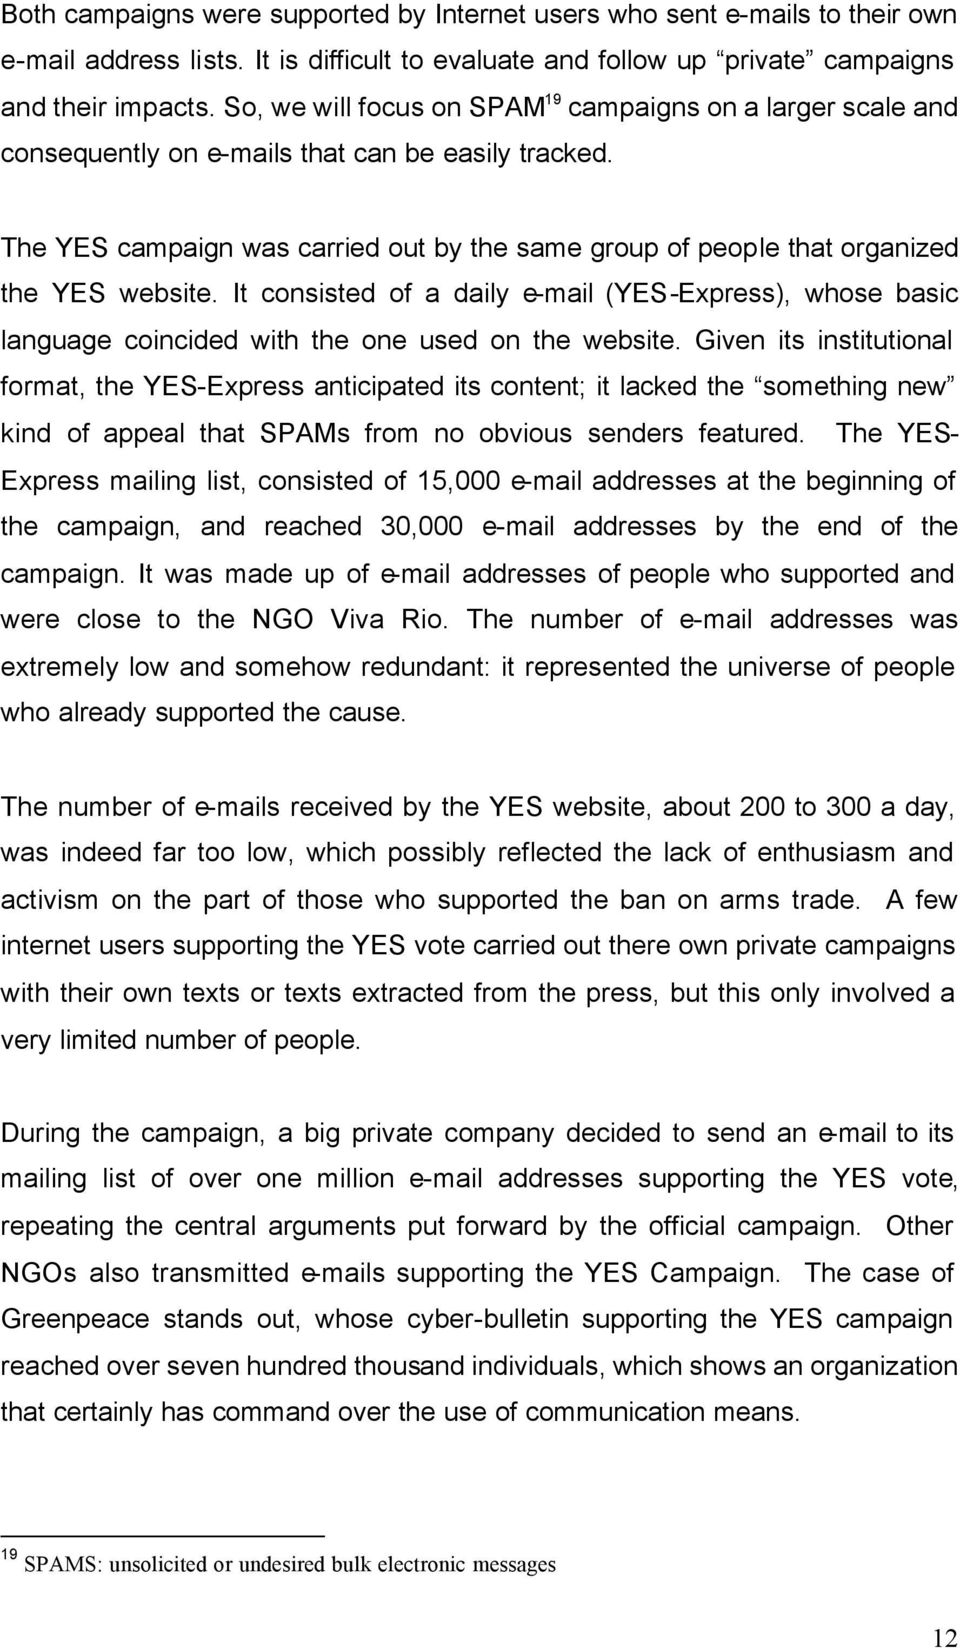 The YES campaign was carried out by the same group of people that organized the YES website.